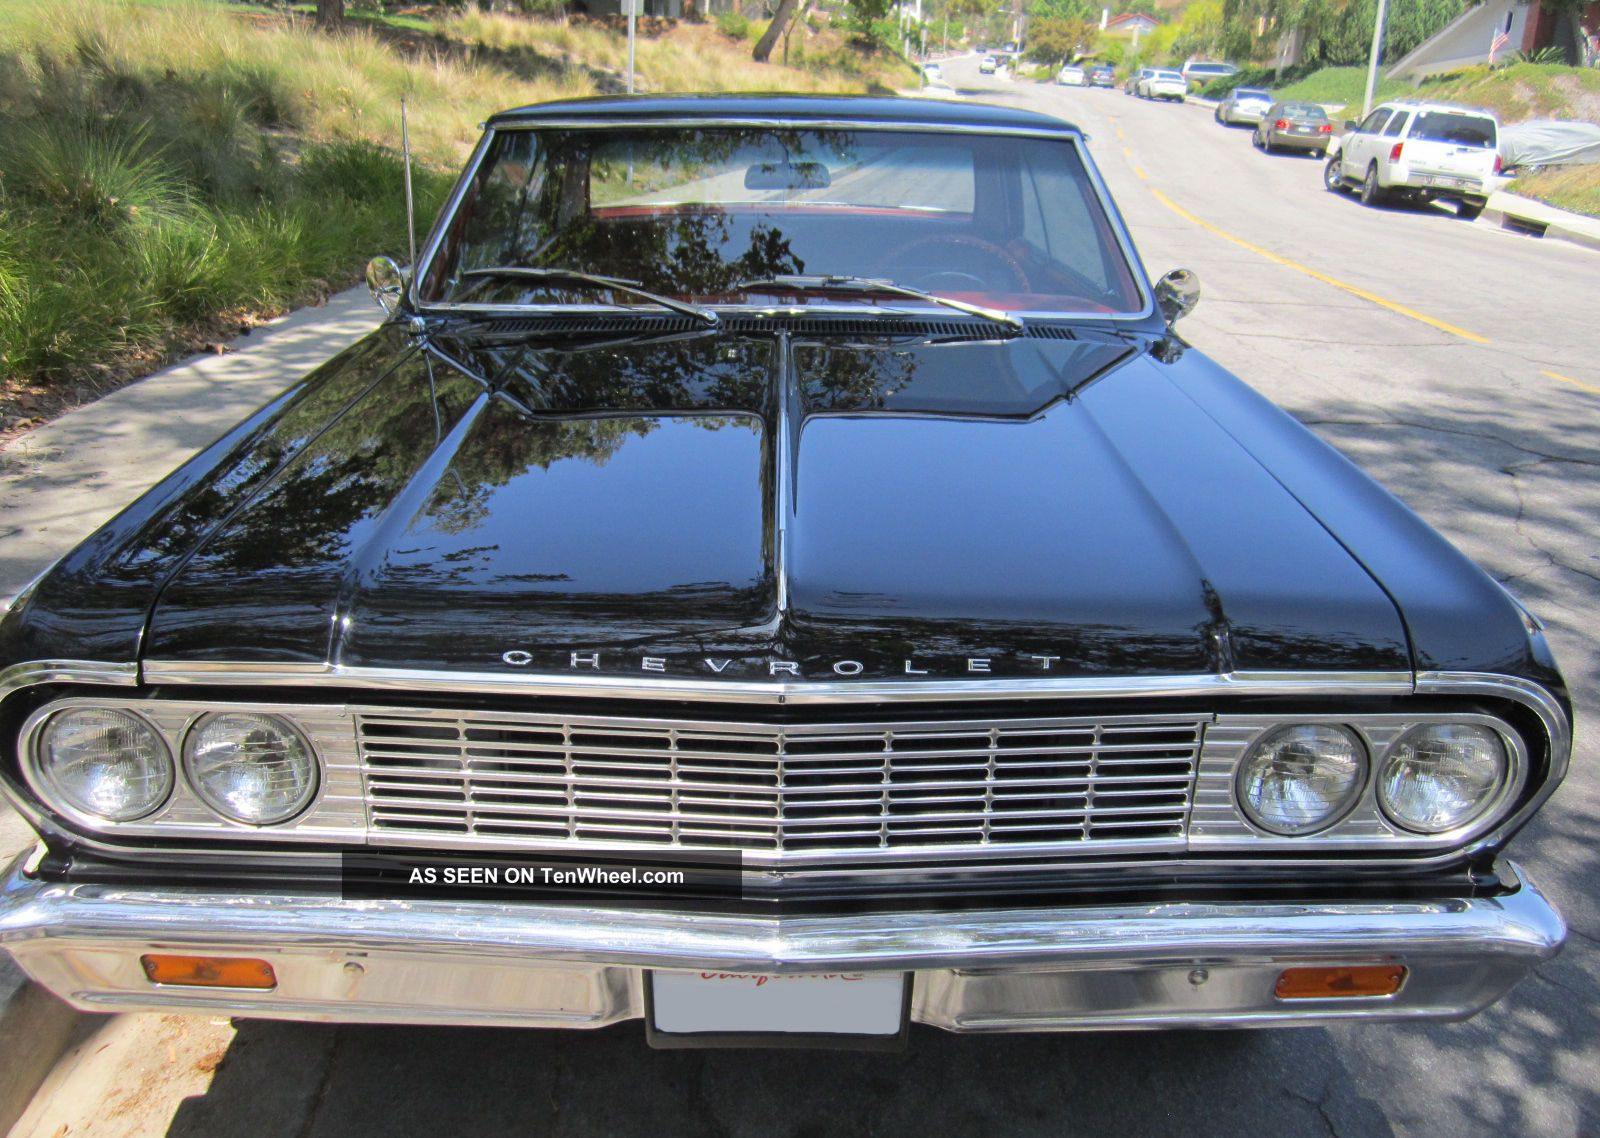 2013 Chevy Malibu Owners Manual >> 1964 Chevrolet Chevelle Malibu Ss Hardtop (black / Red) 4 Speed - Matching Car